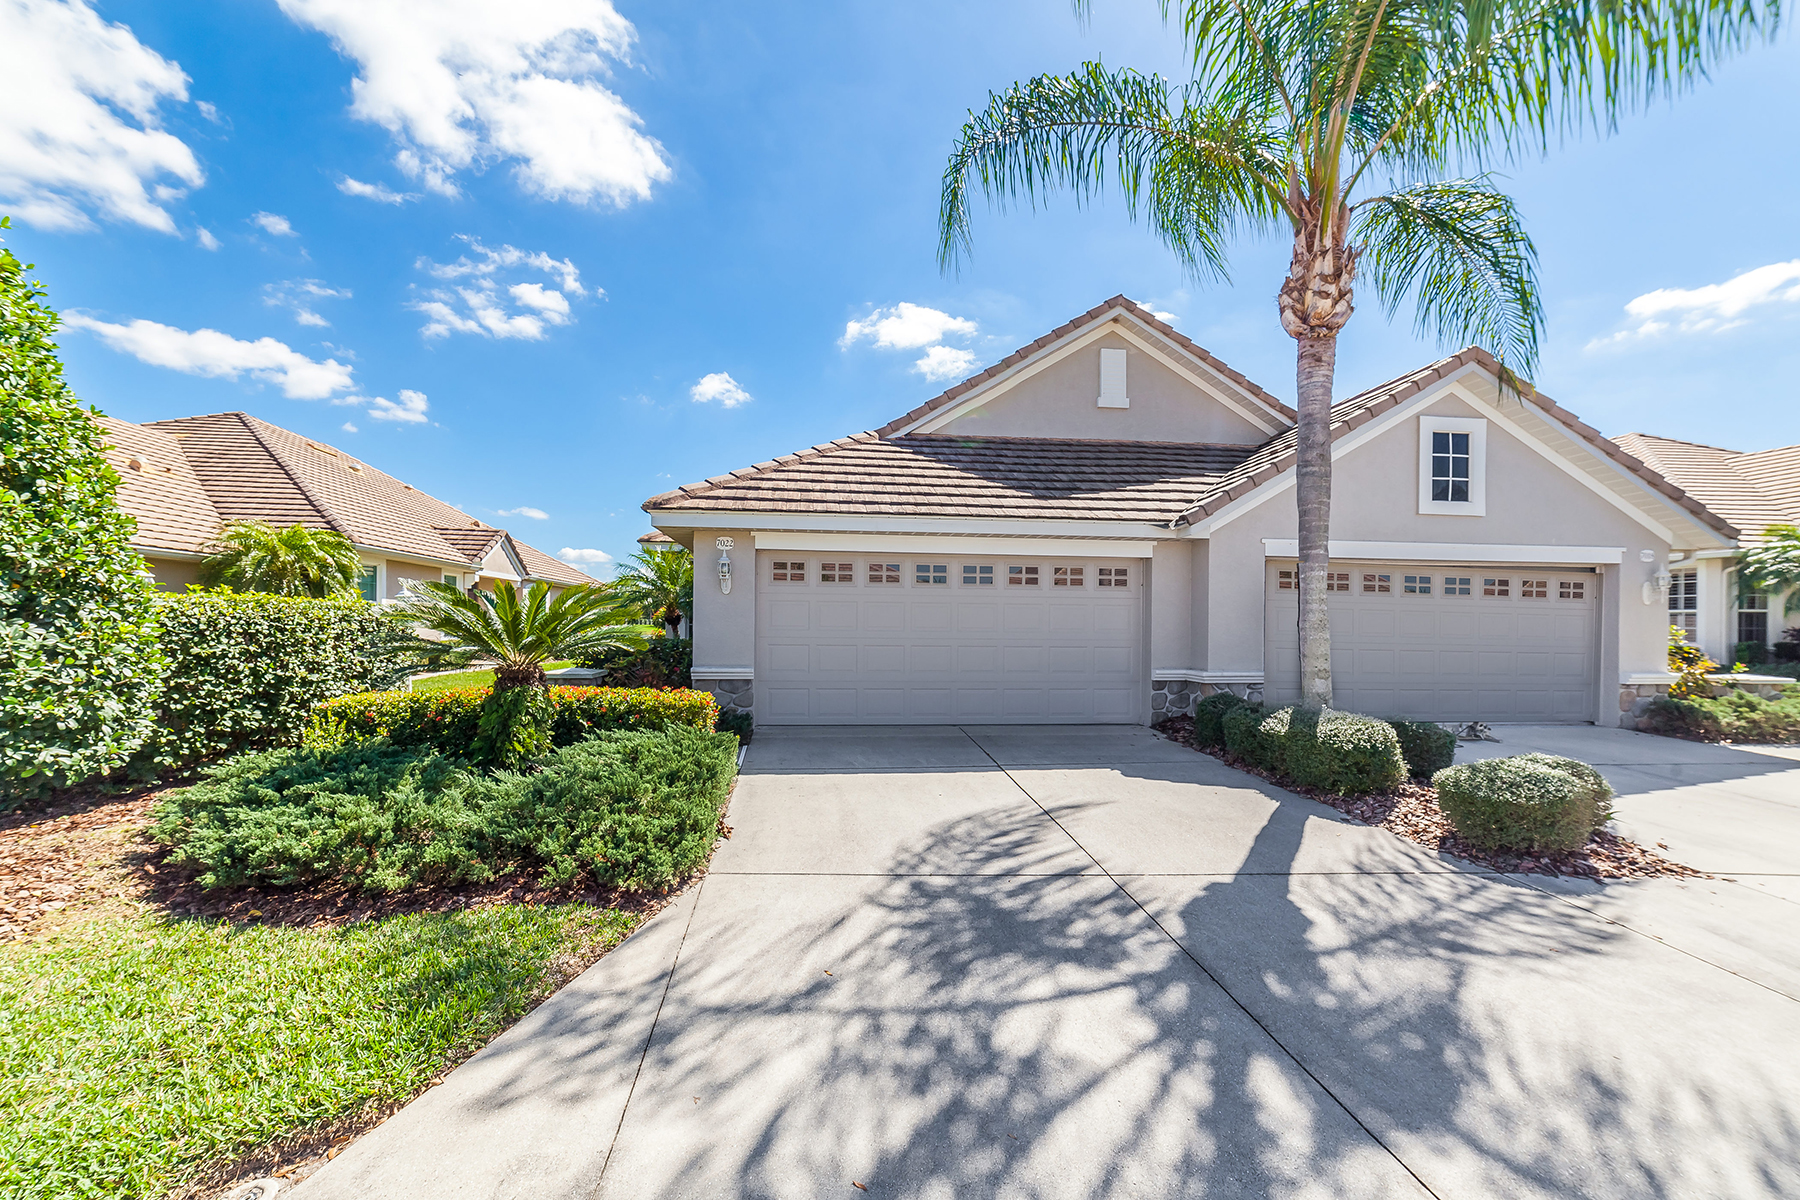 Single Family Home for Sale at LAKEWOOD RANCH COUNTRY CLUB 7022 Woodmore Terr Lakewood Ranch, Florida, 34202 United States